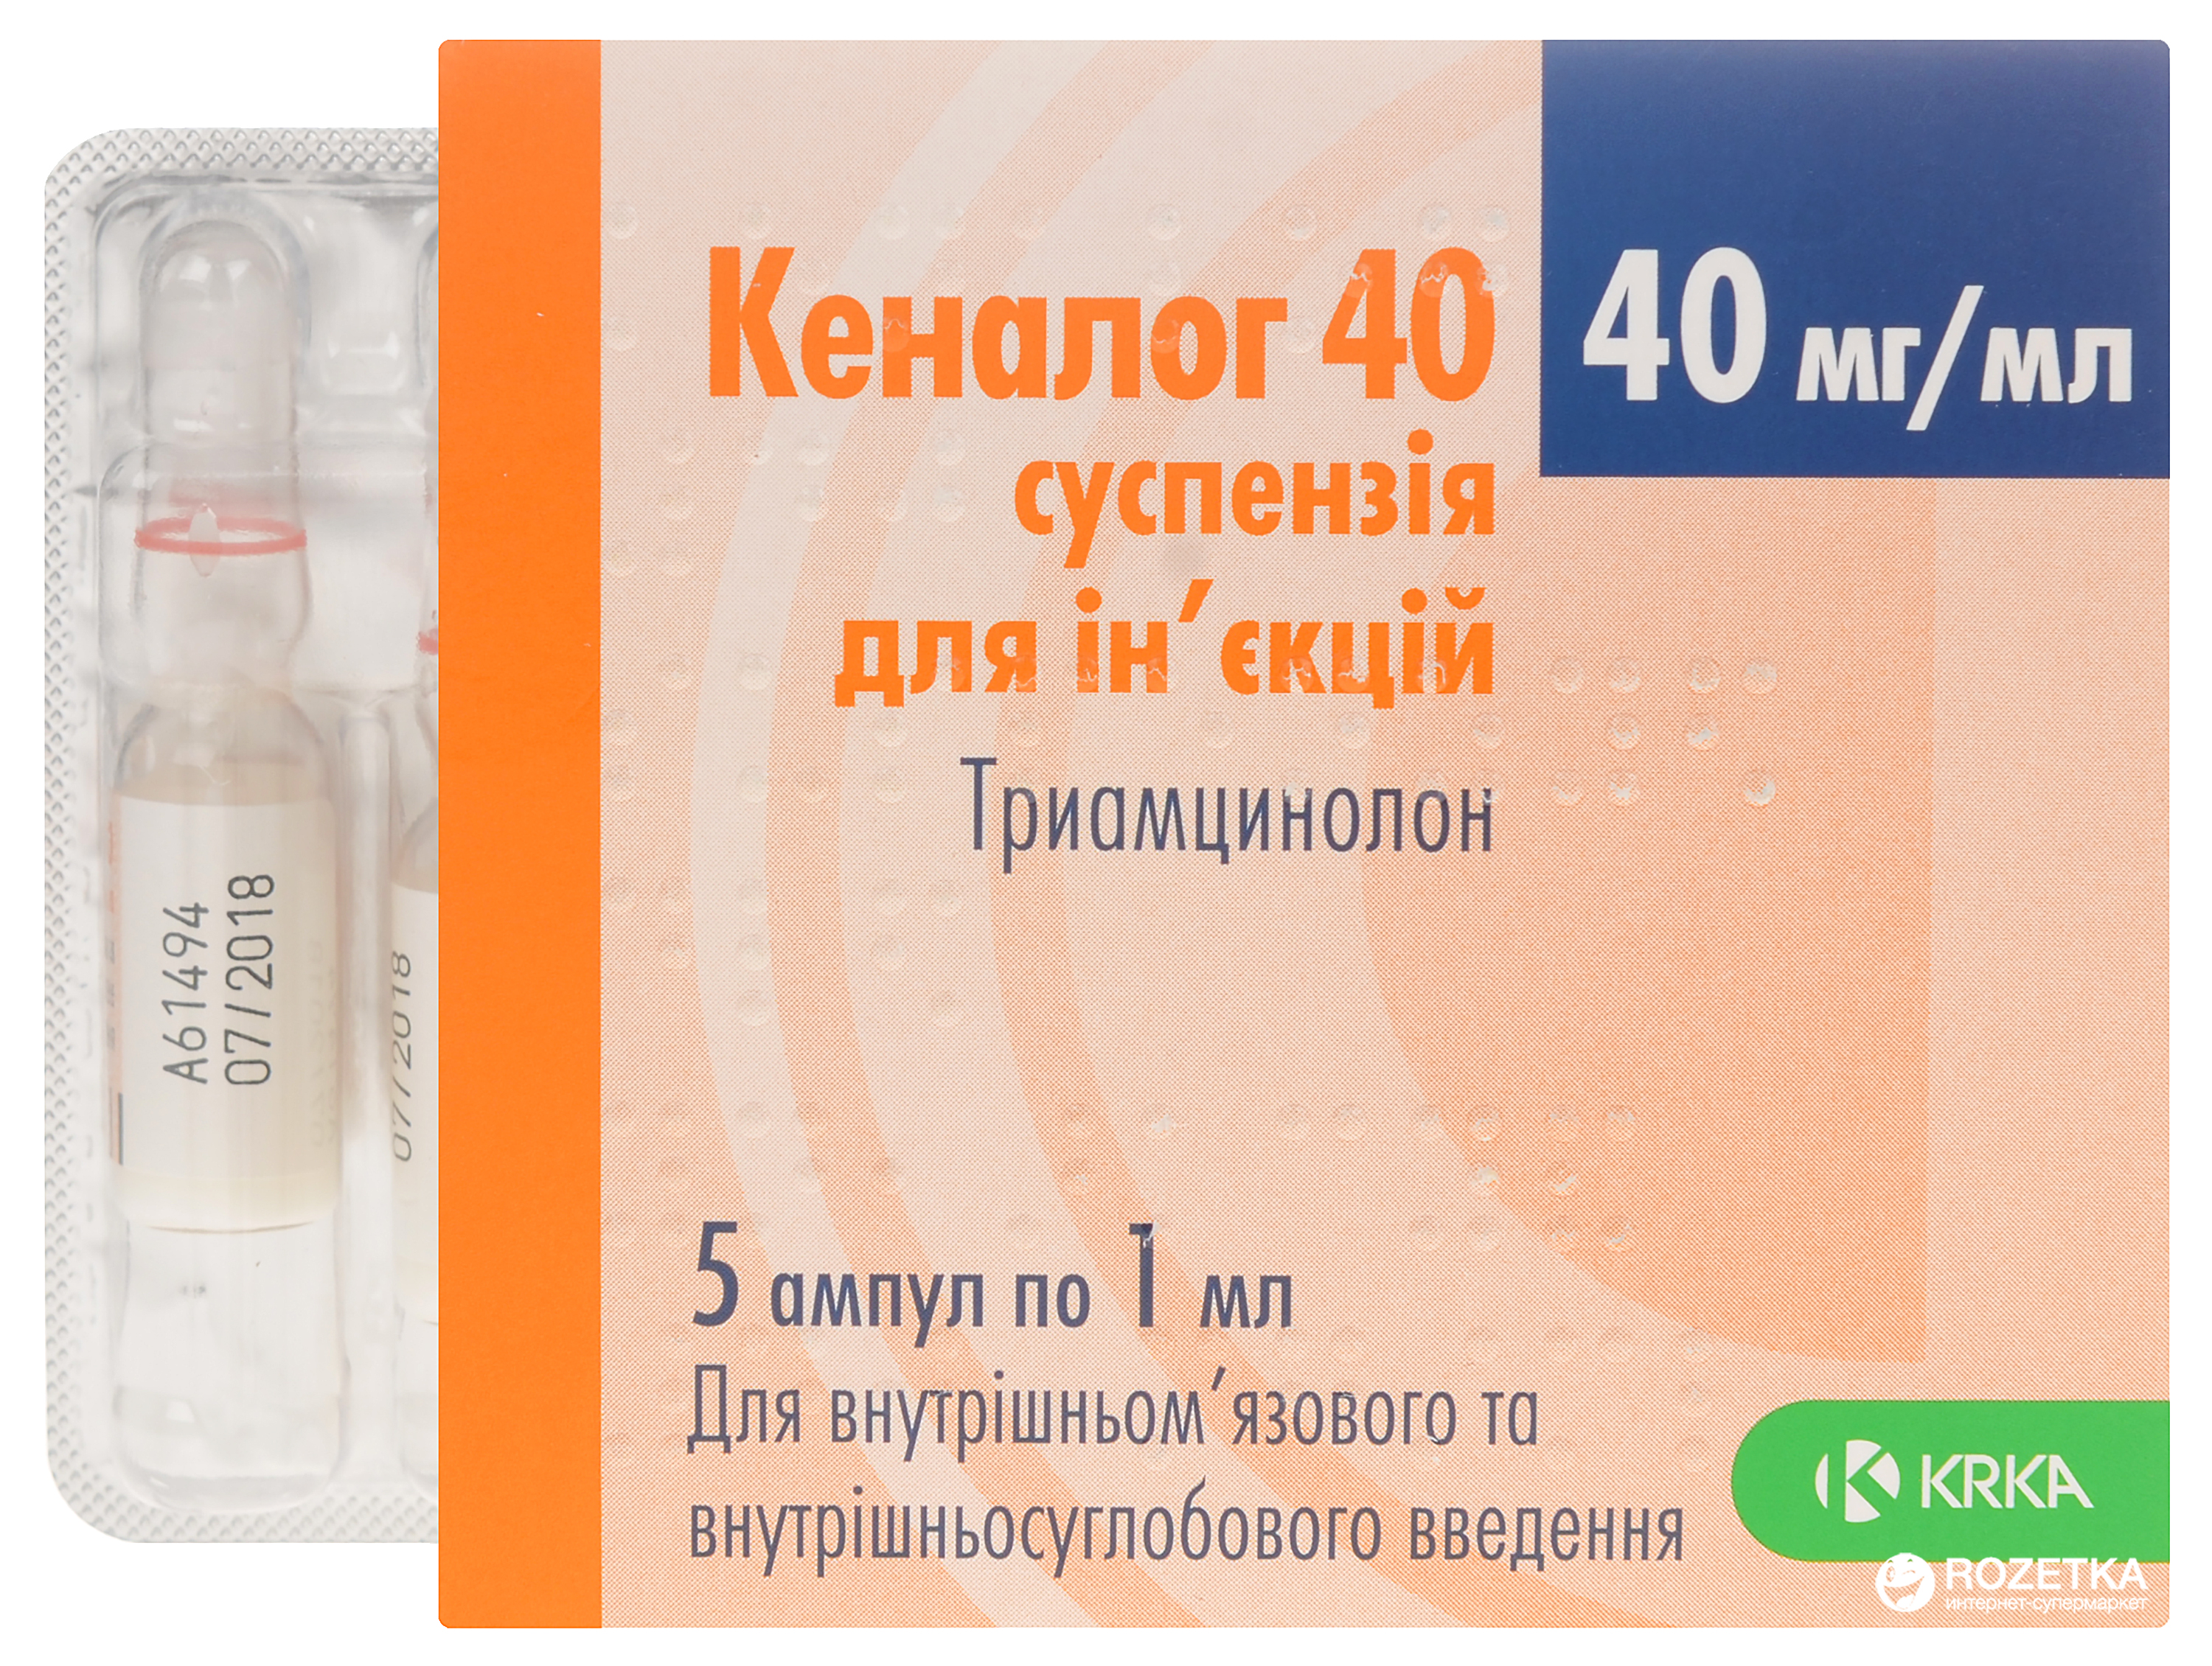 cymbalta 30 mg fluoxetine hcl